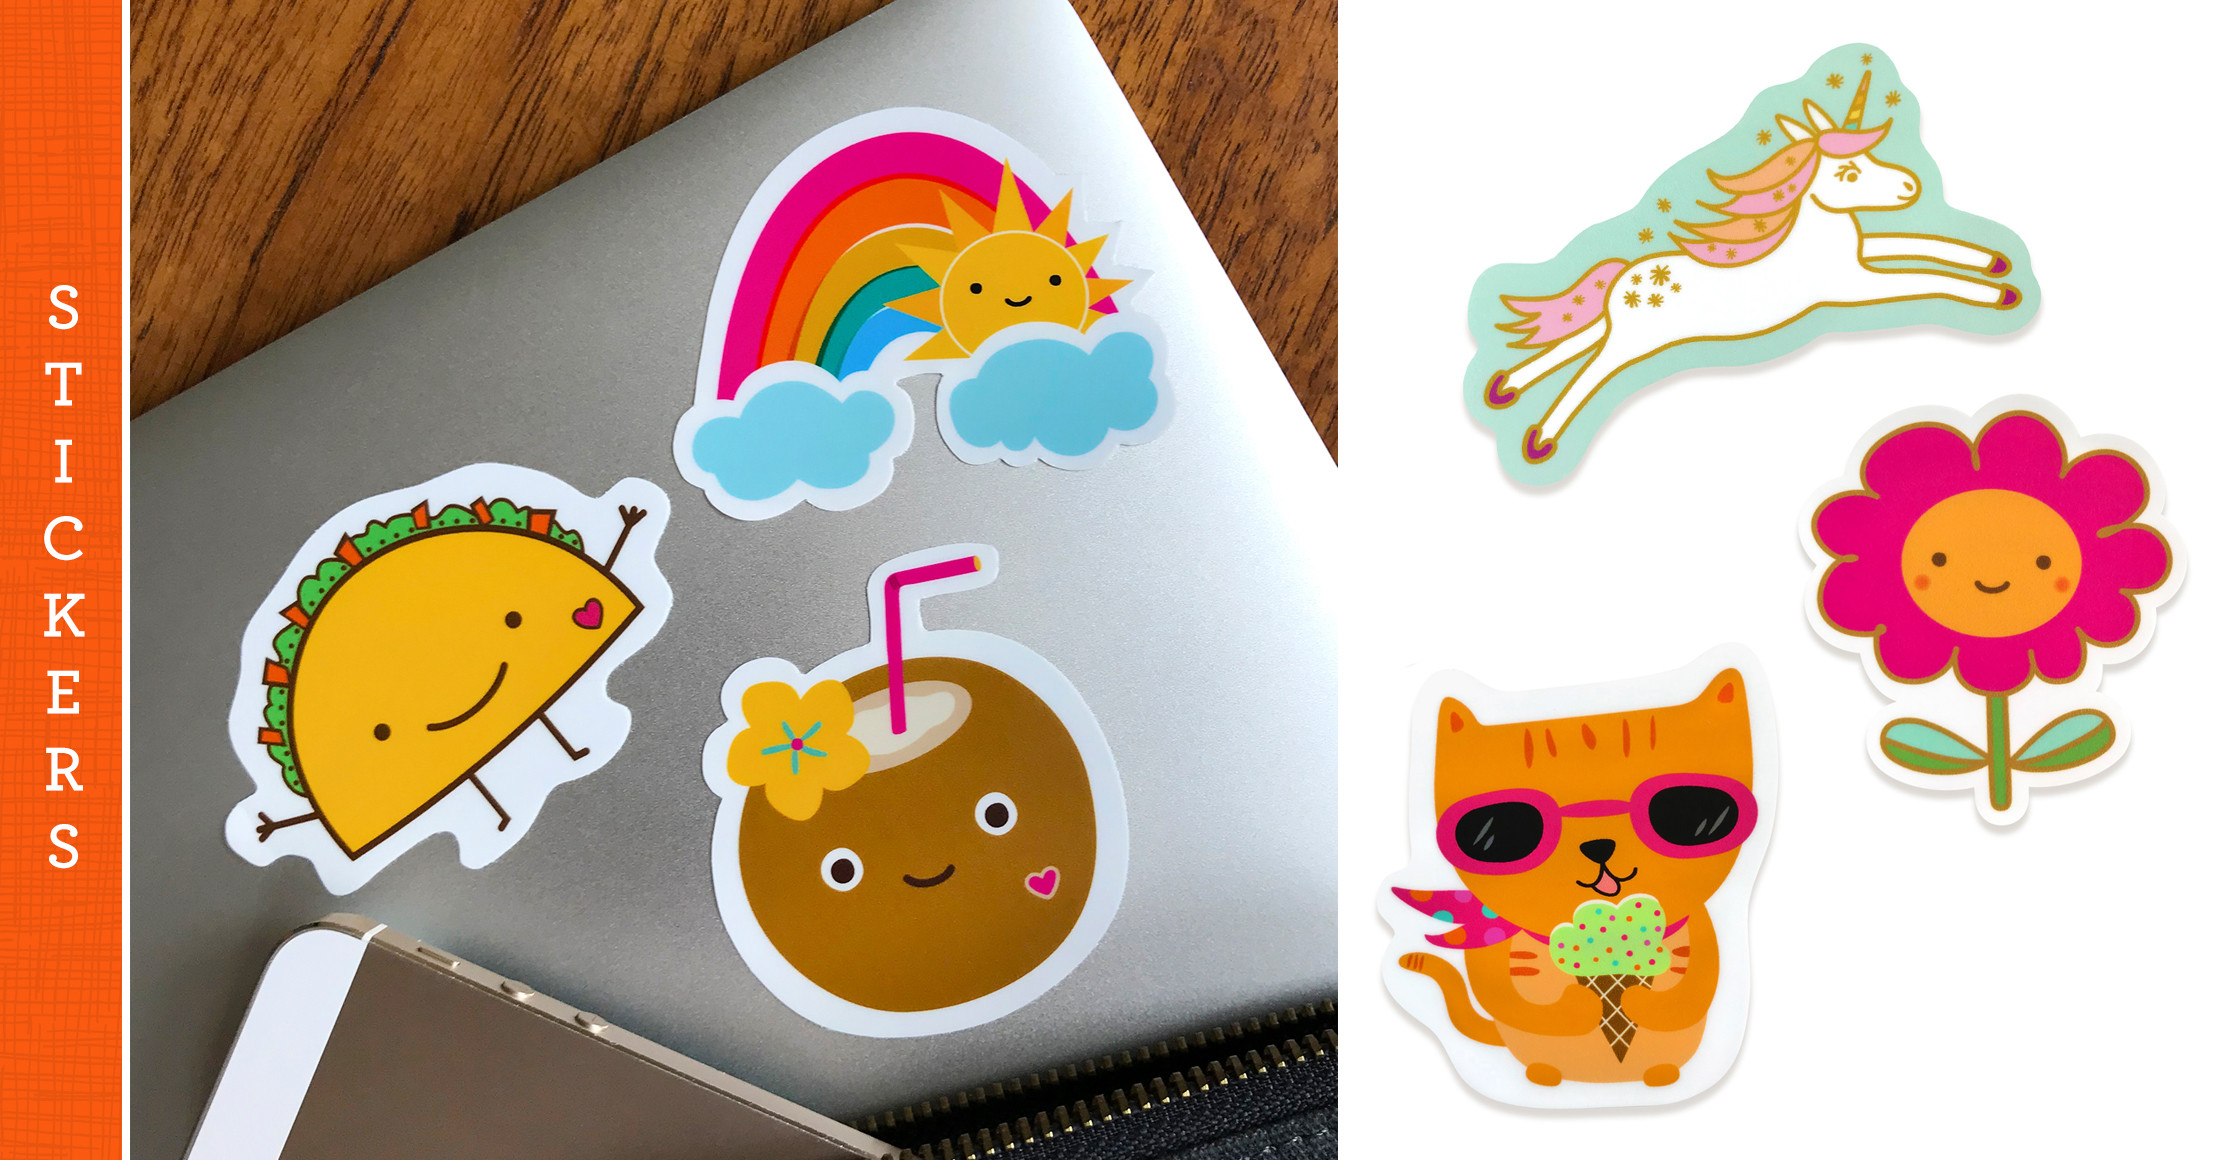 Vinyl stickers liven up laptops, tablets, phones, water bottles, bikes, cars and more!